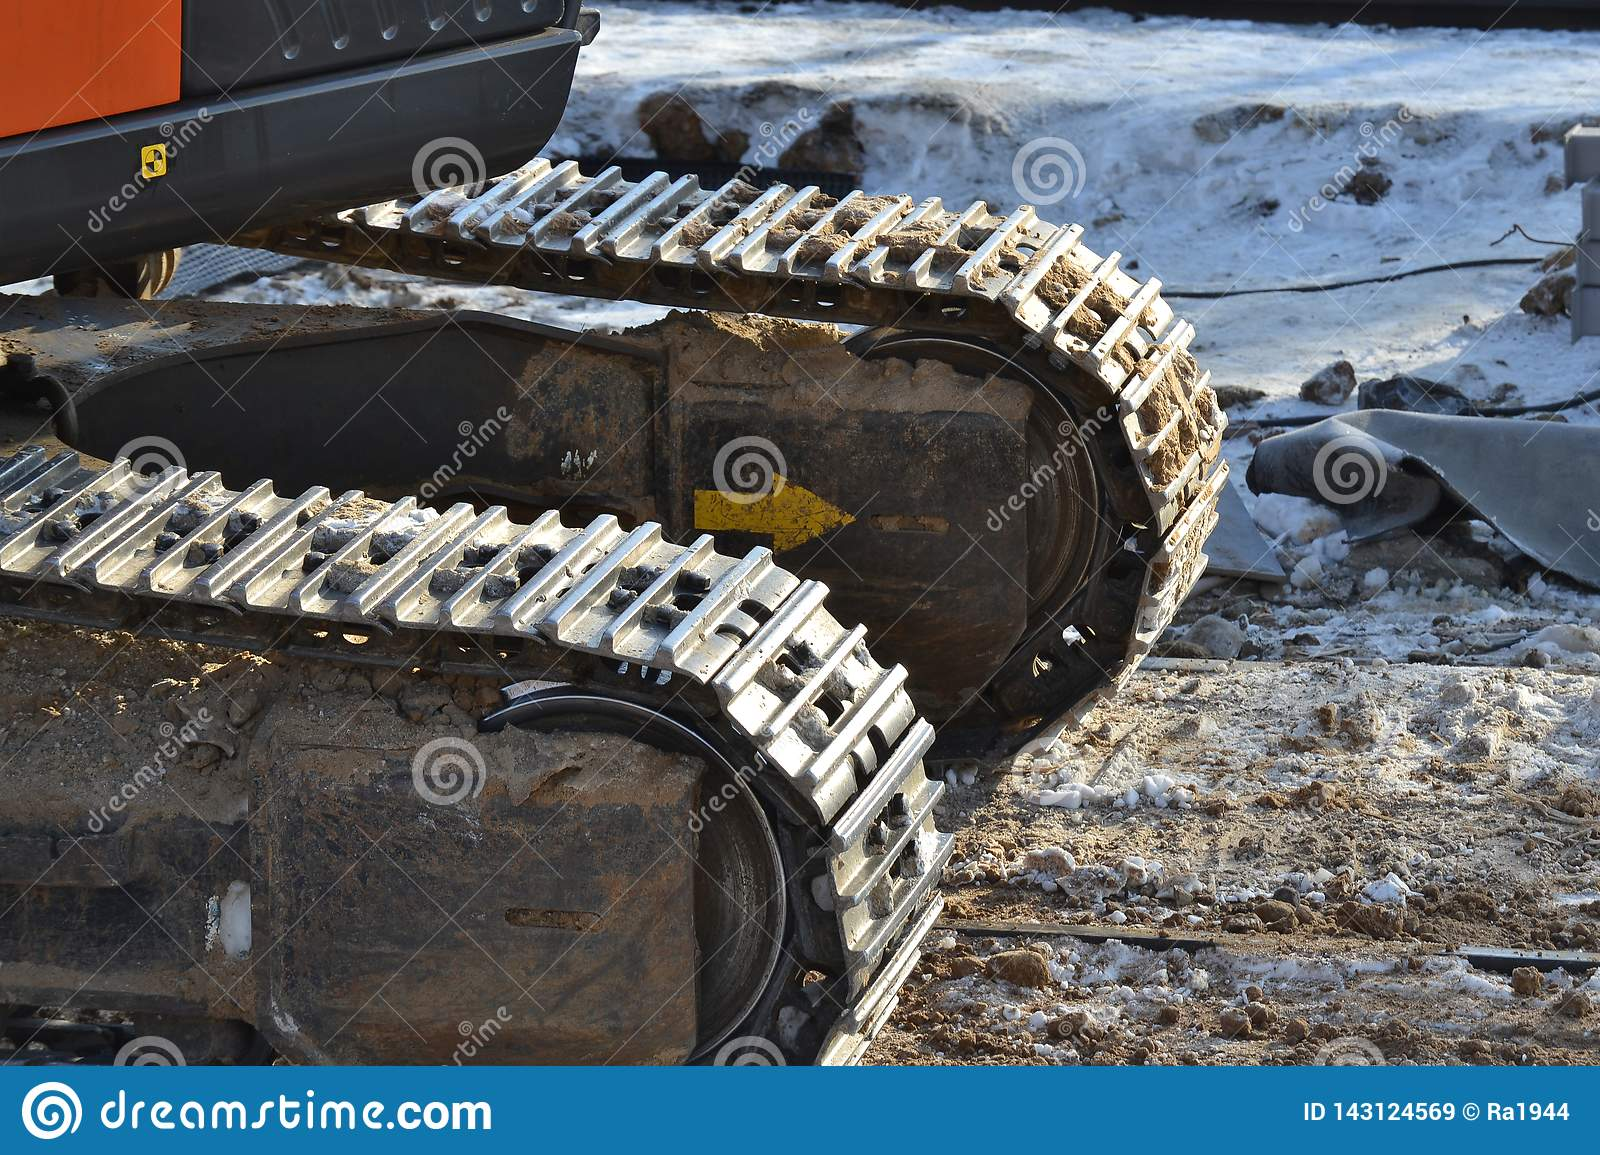 Closeup Continuous tracks or Tracked wheel of excavator or backhoe on the soil floor